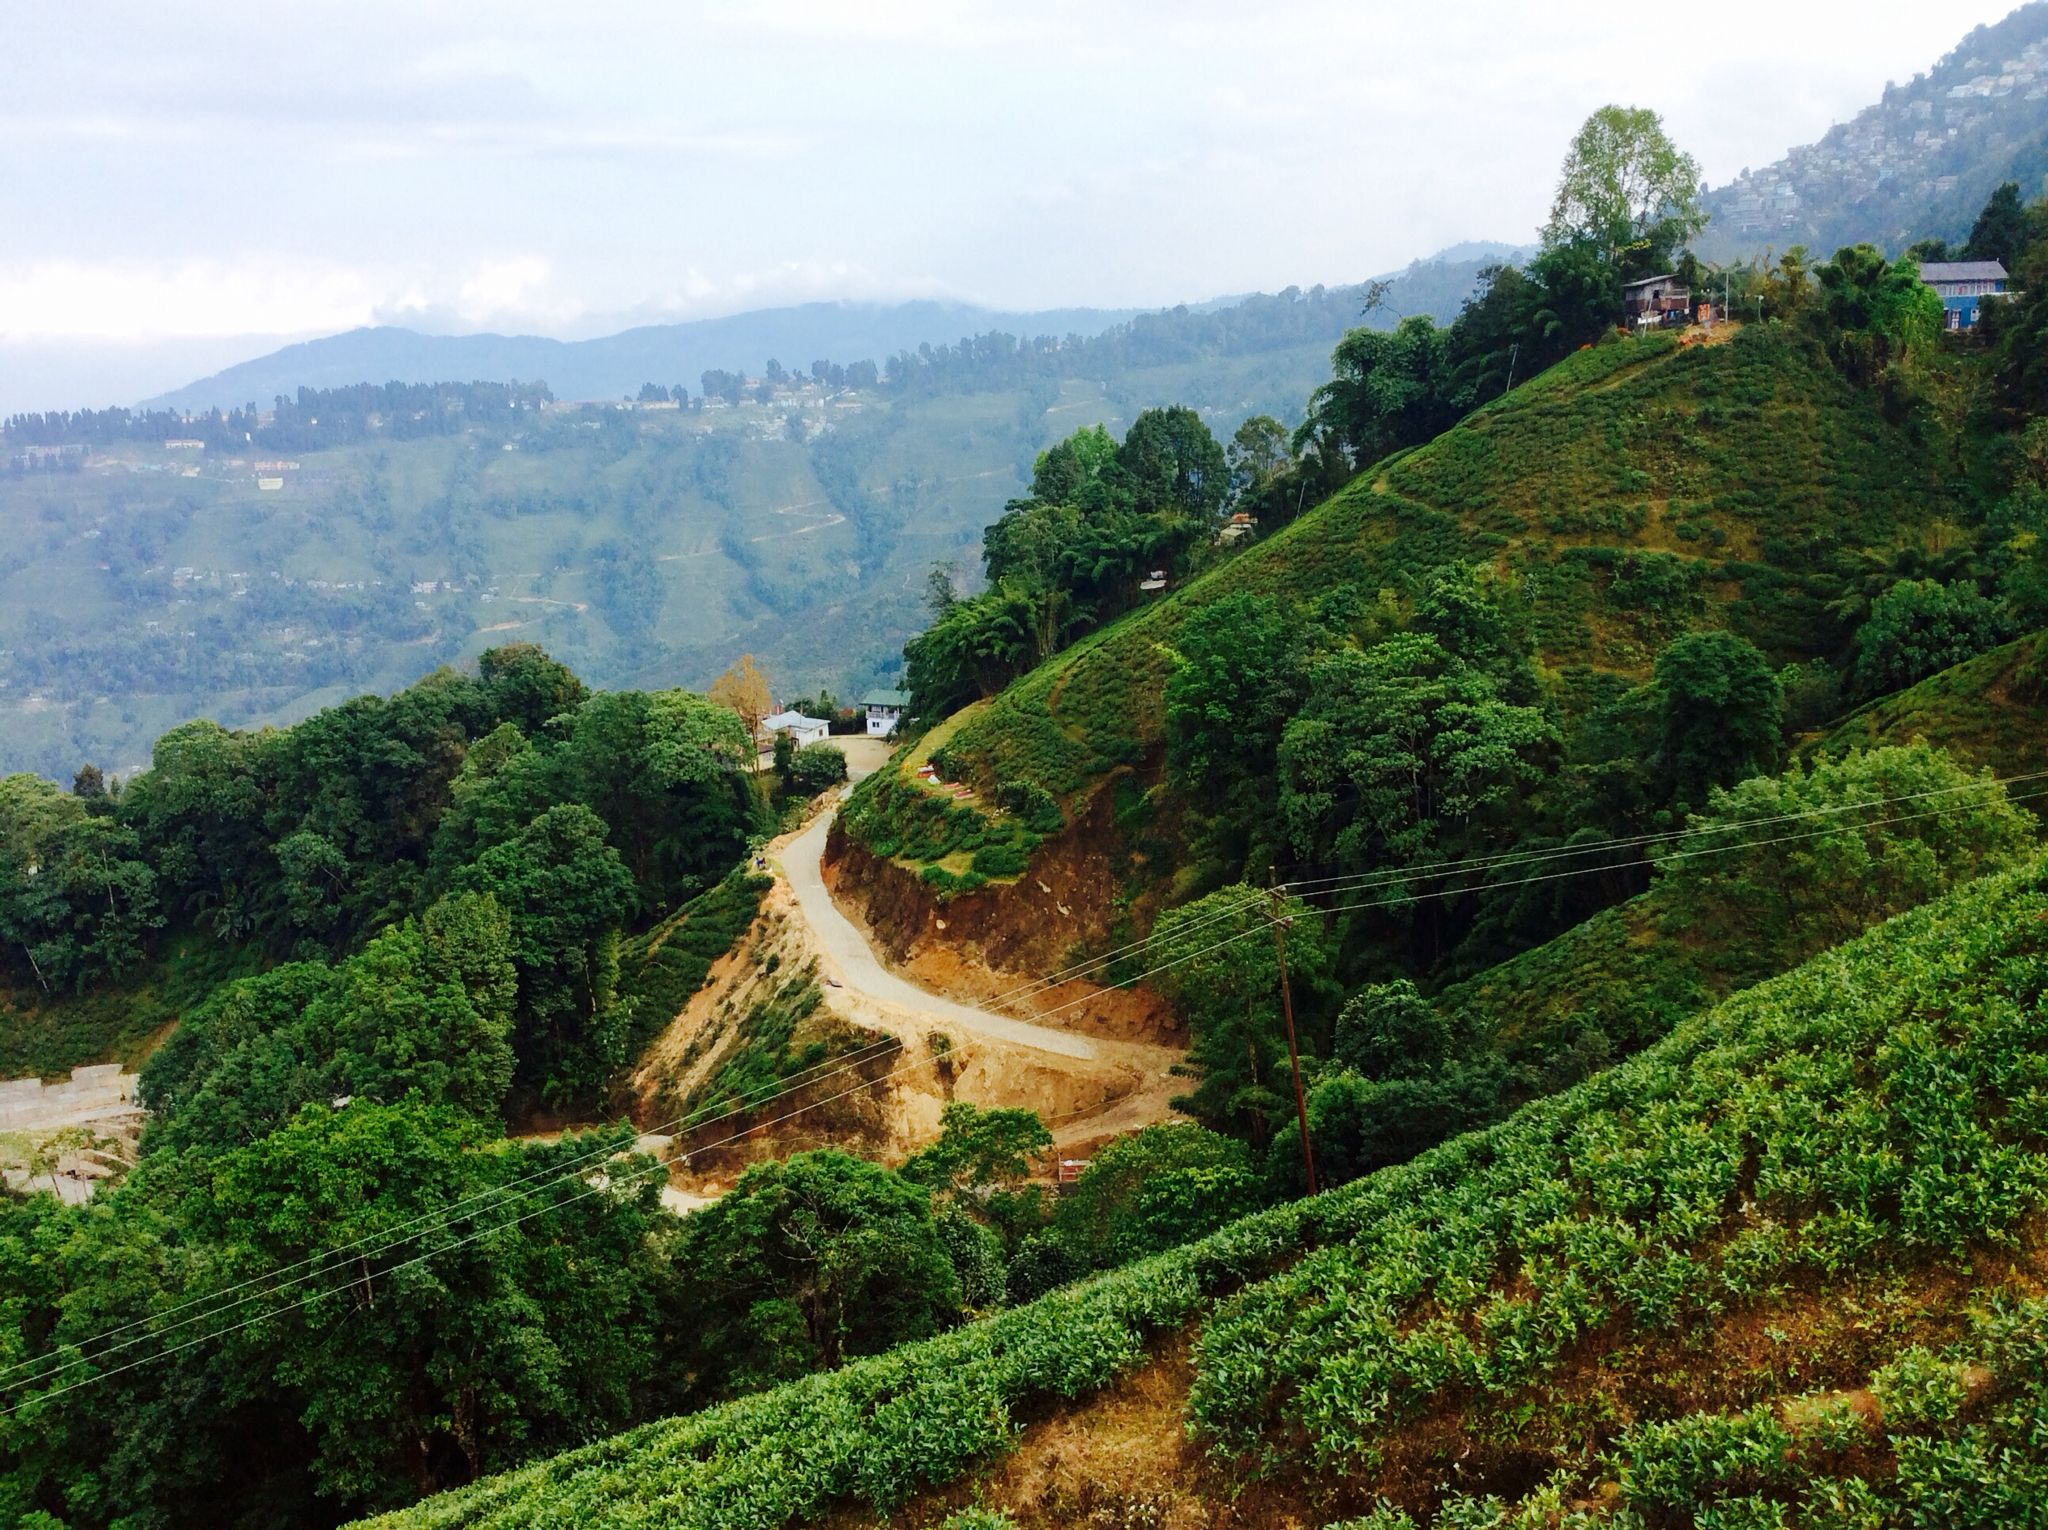 Tea plantations in Darjeeling, India